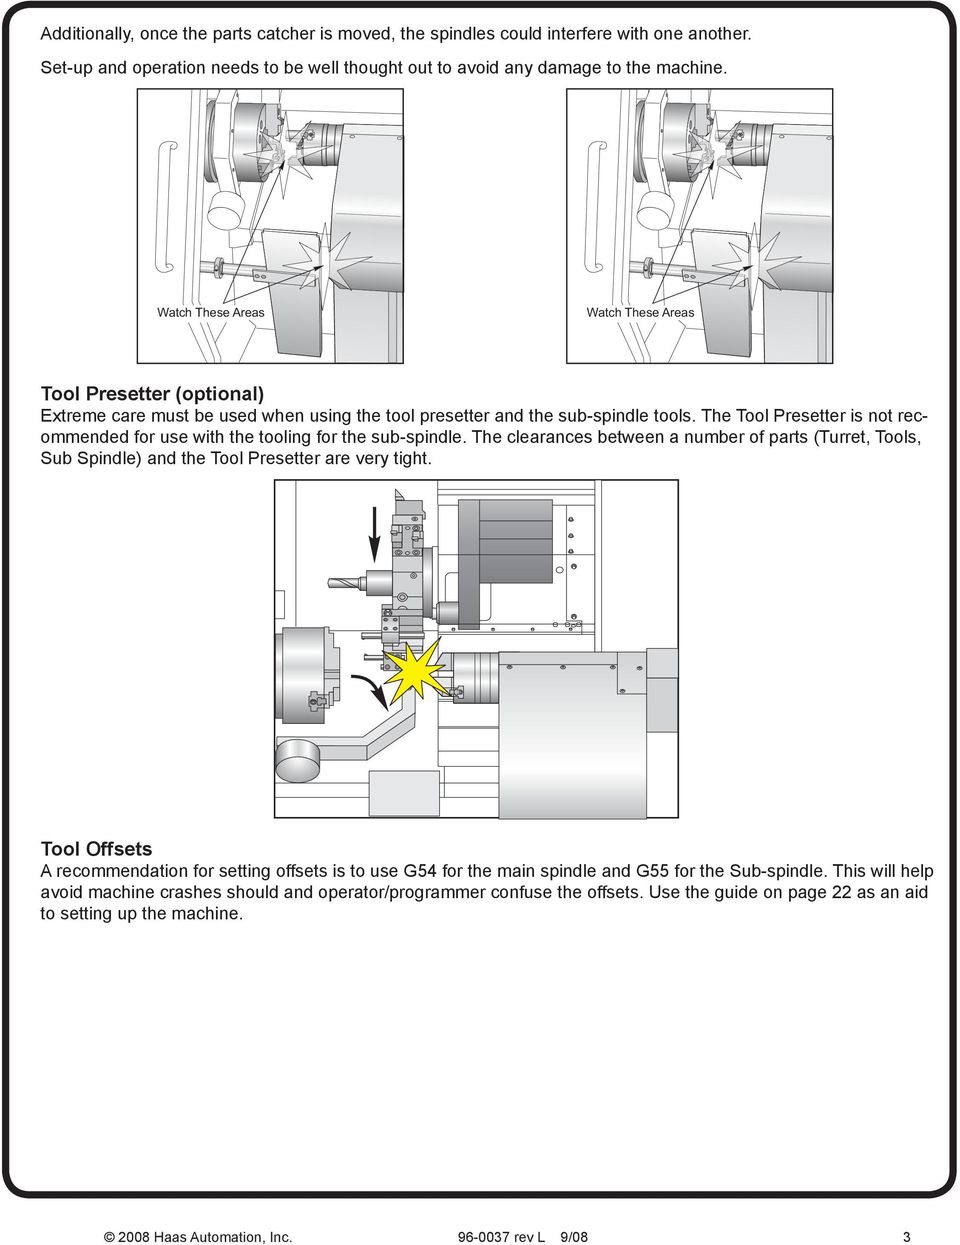 The Tool Presetter is not recommended for use with the tooling for the sub-spindle. The clearances between a number of parts (Turret, Tools, Sub Spindle) and the Tool Presetter are very tight.